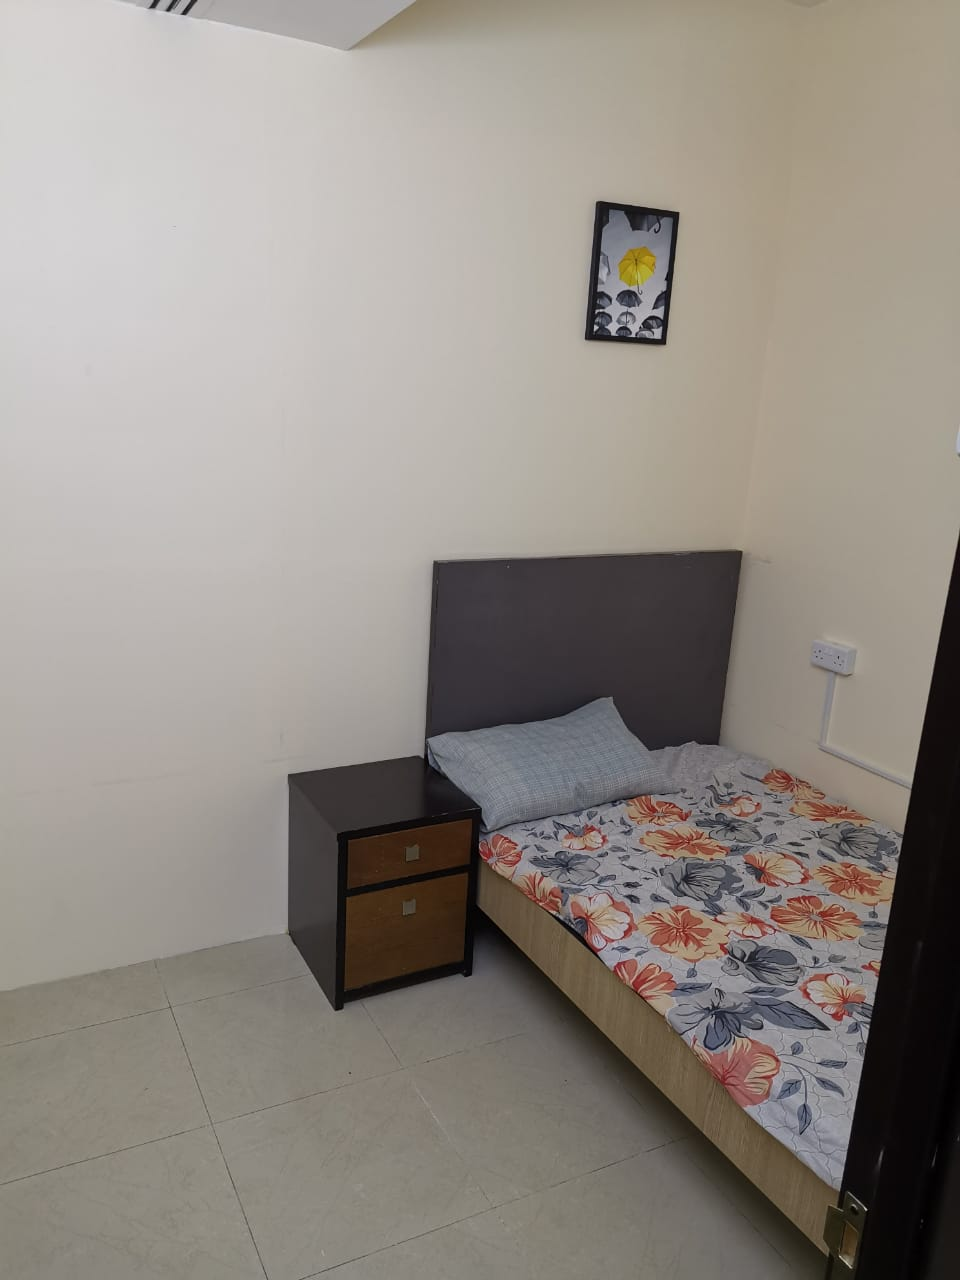 Couples Rooms with Attach Washroom in @2000, A/Ac, Inclusive All, Near to Metro in Bur Dubai